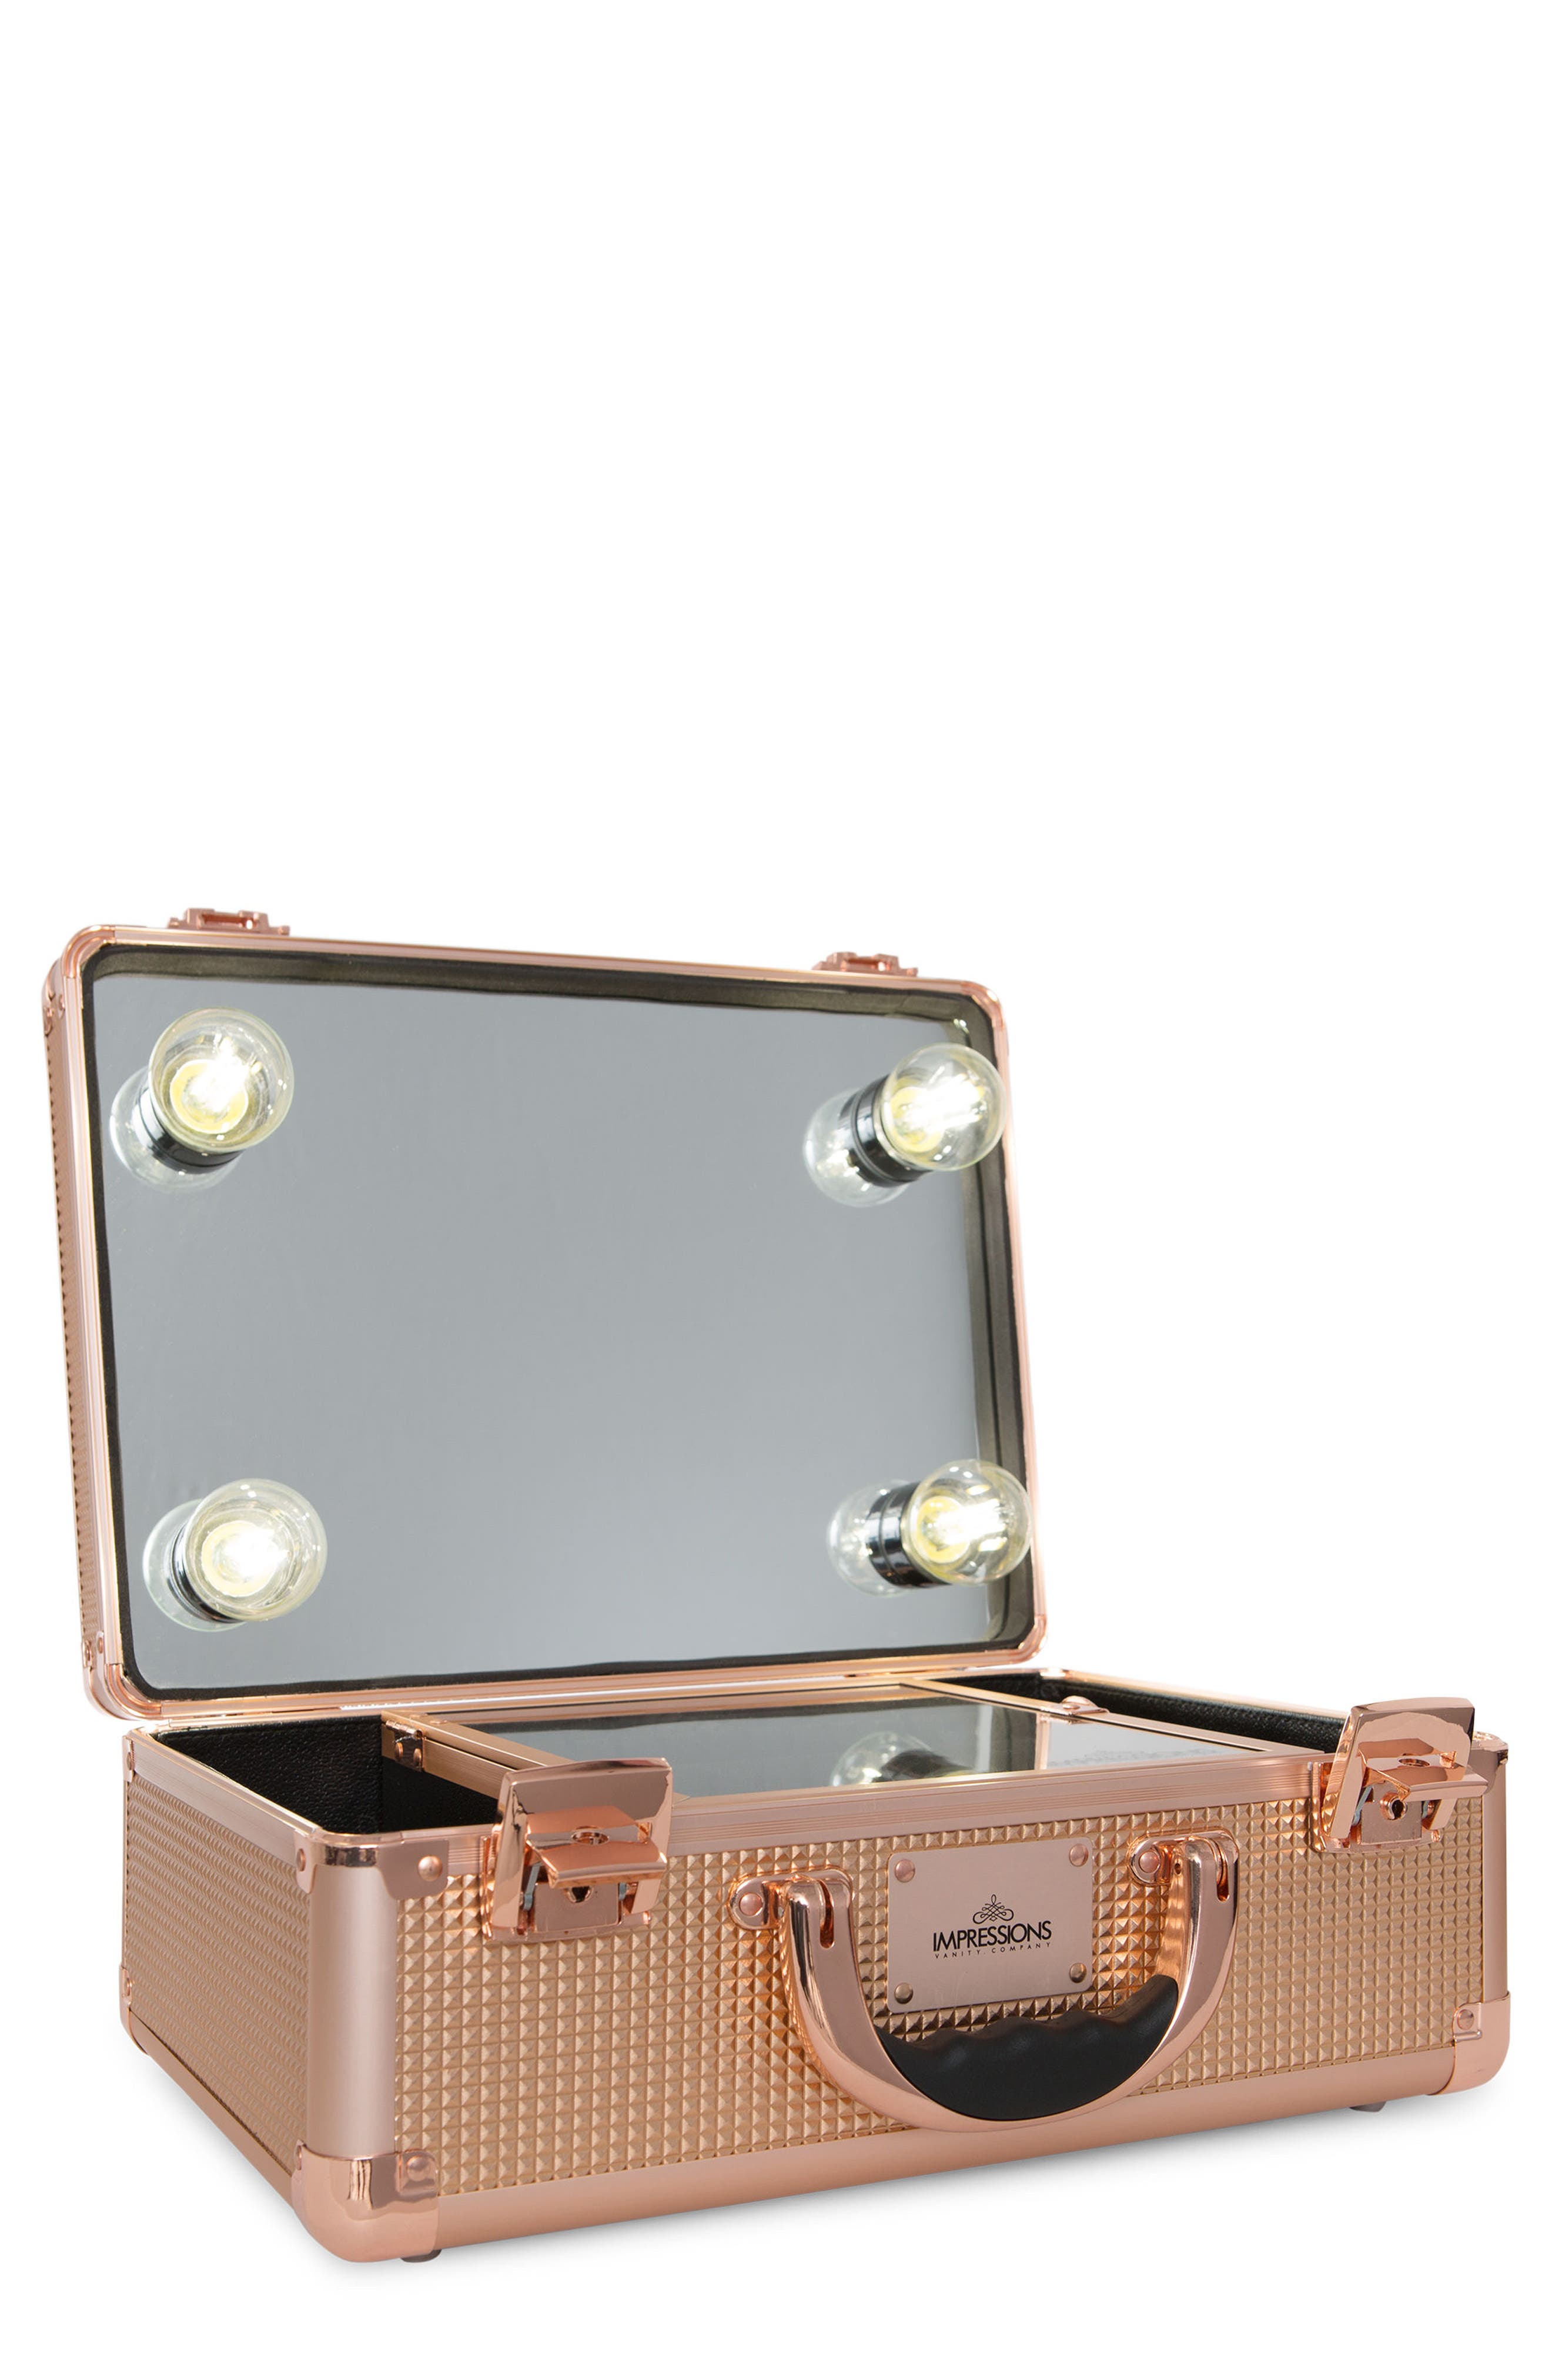 SlayCase<sup>™</sup> 2.0 Vanity Travel Case,                             Main thumbnail 1, color,                             Rose Gold